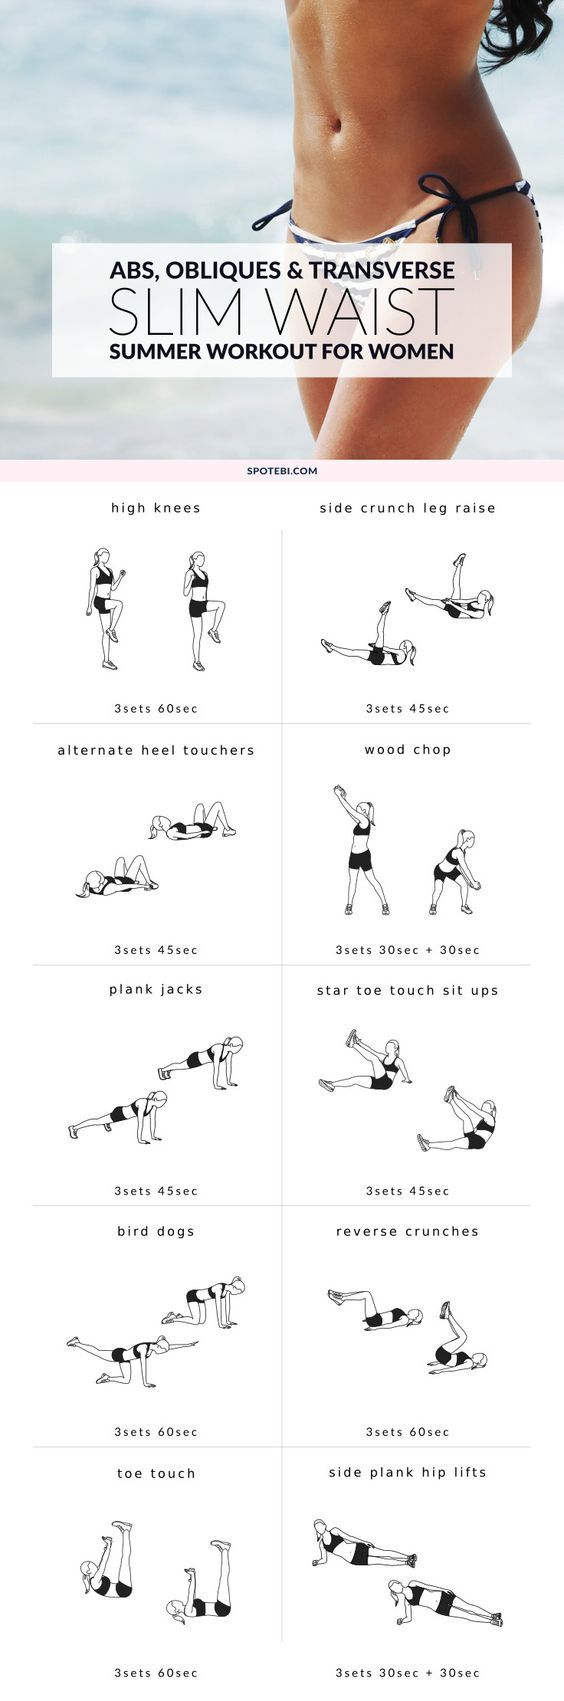 The secret to a slim waist lies in a combination of exercises that work your abs, obliques and the transverse abdominals. These 10 waist slimming moves are perfect for toning and defining your waist and abs, and banish those love handles for good! http://www.spotebi.com/workout-routines/at-home-waist-slimming-exercises-for-women/: